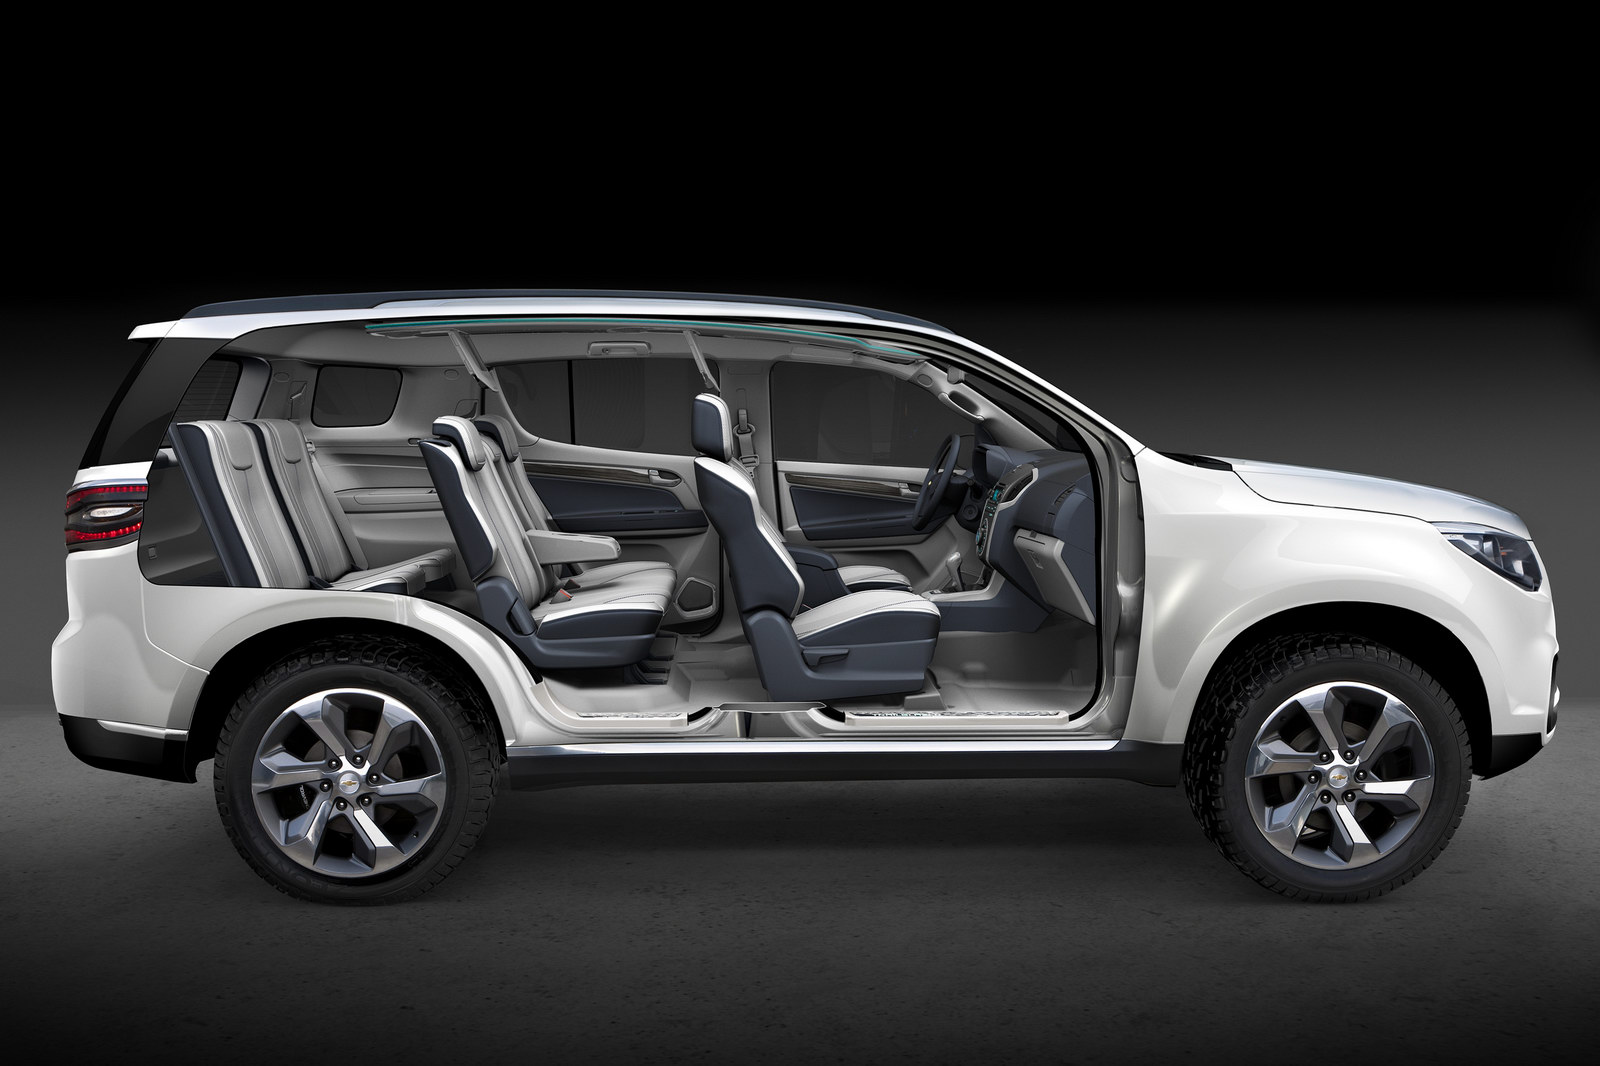 2013 Chevrolet Trailblazer Gets Real With New Photos and ...